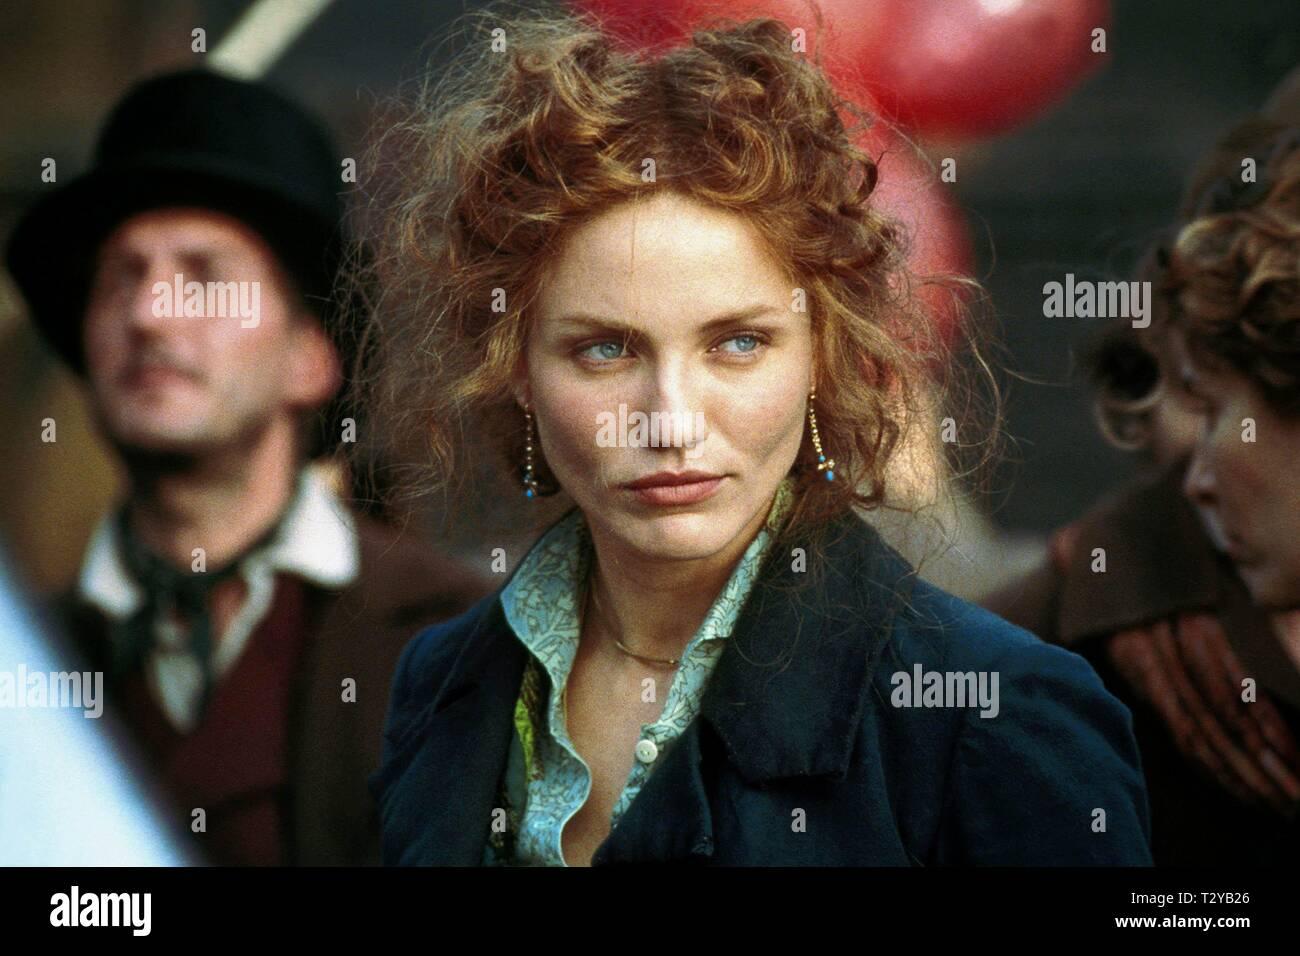 CAMERON DIAZ, GANGS OF NEW YORK, 2002 - Stock Image